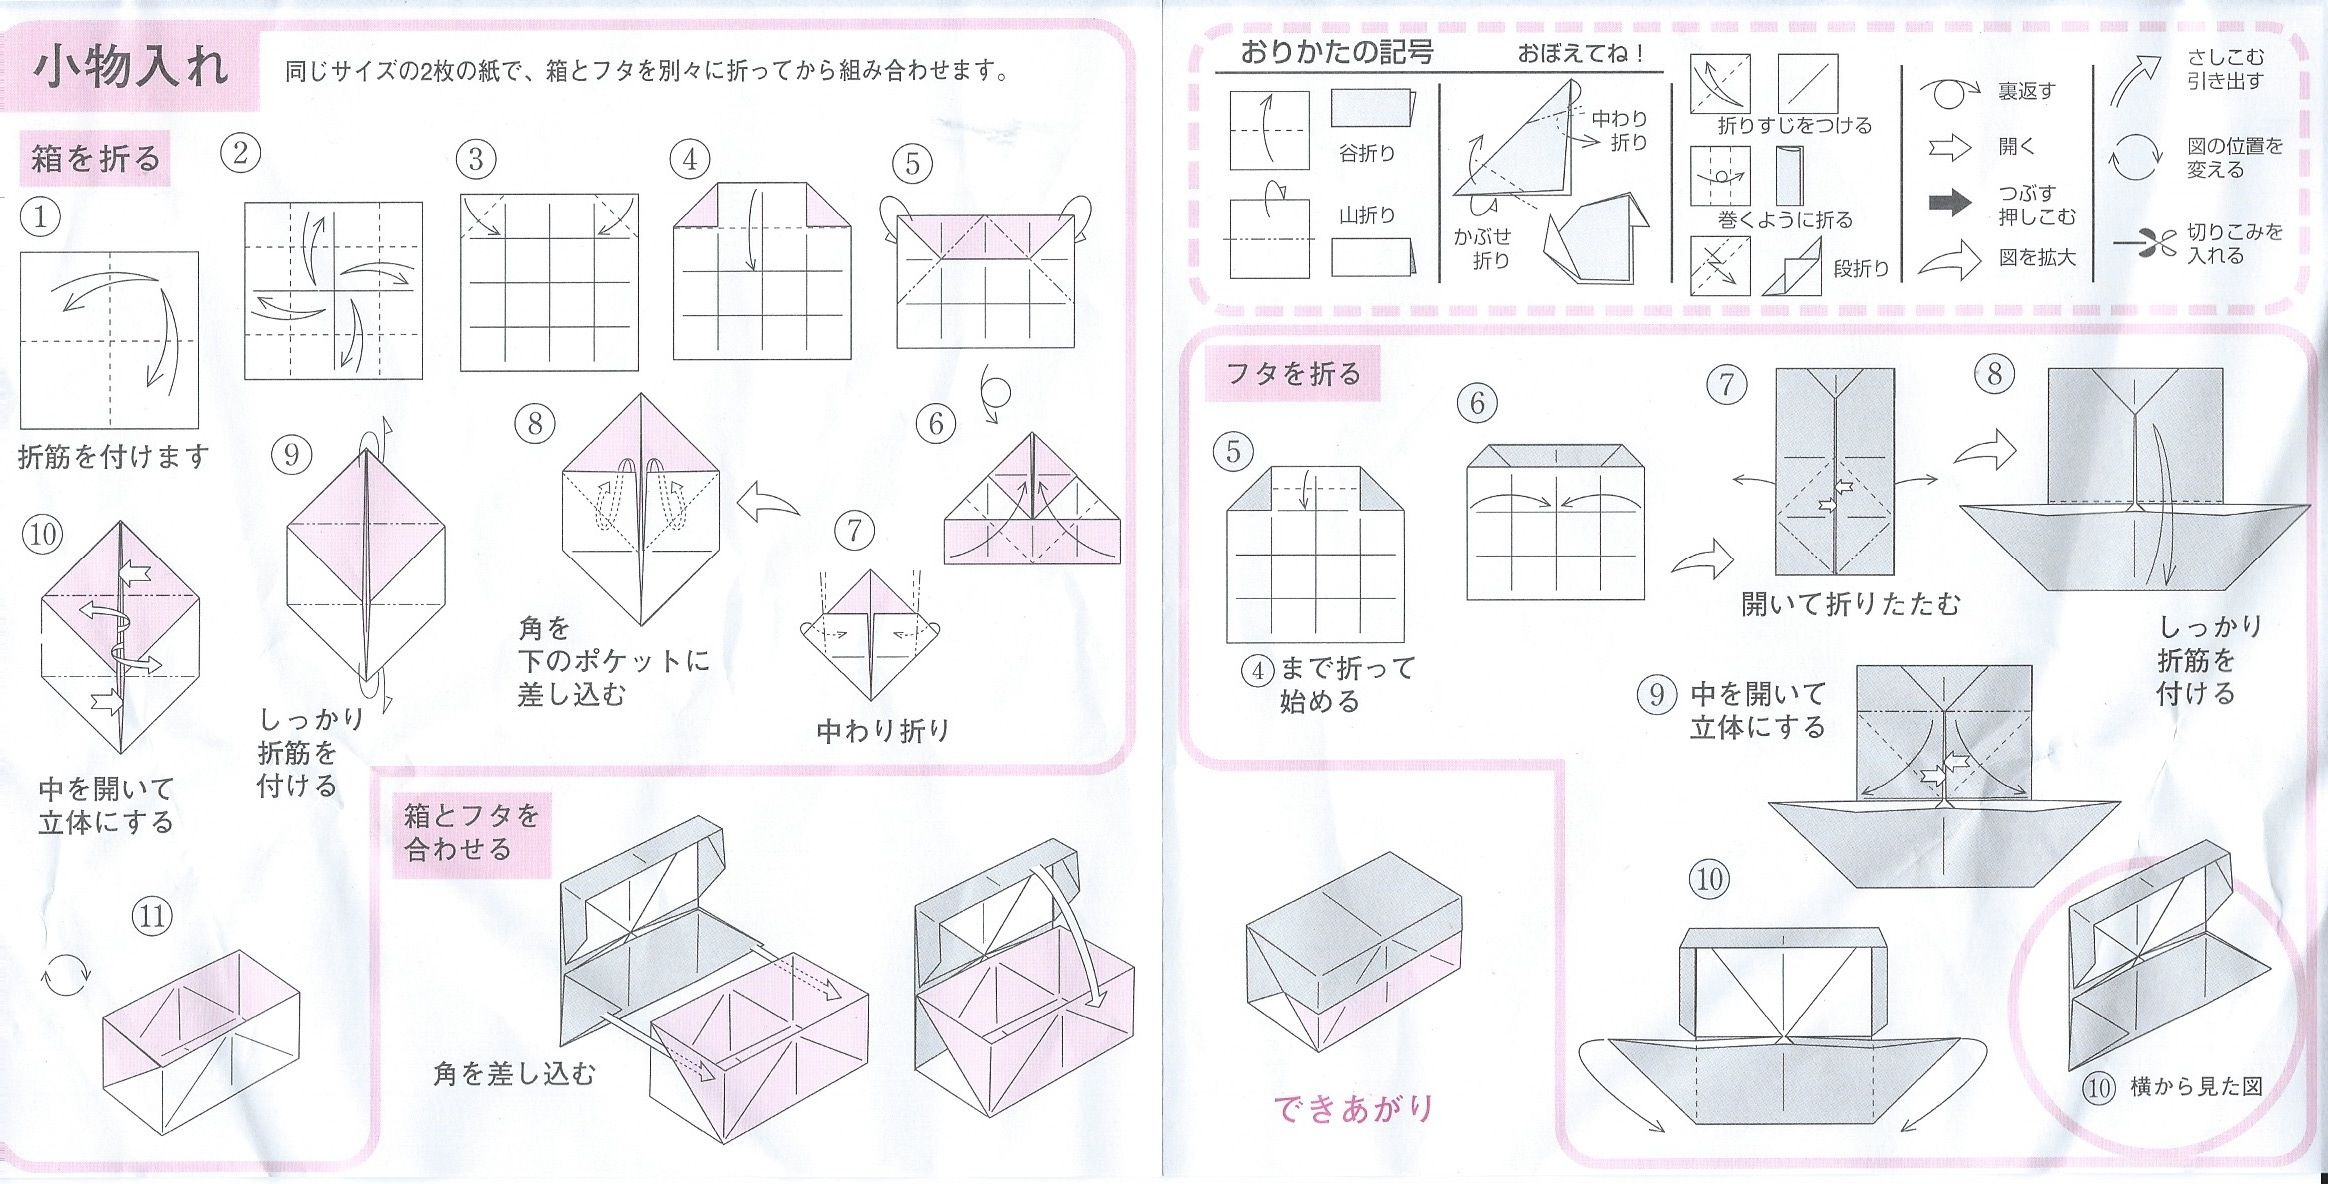 Origami Diagrams For Two Piece Box With Hinged Lid Origami Box Origami Origami Diagrams